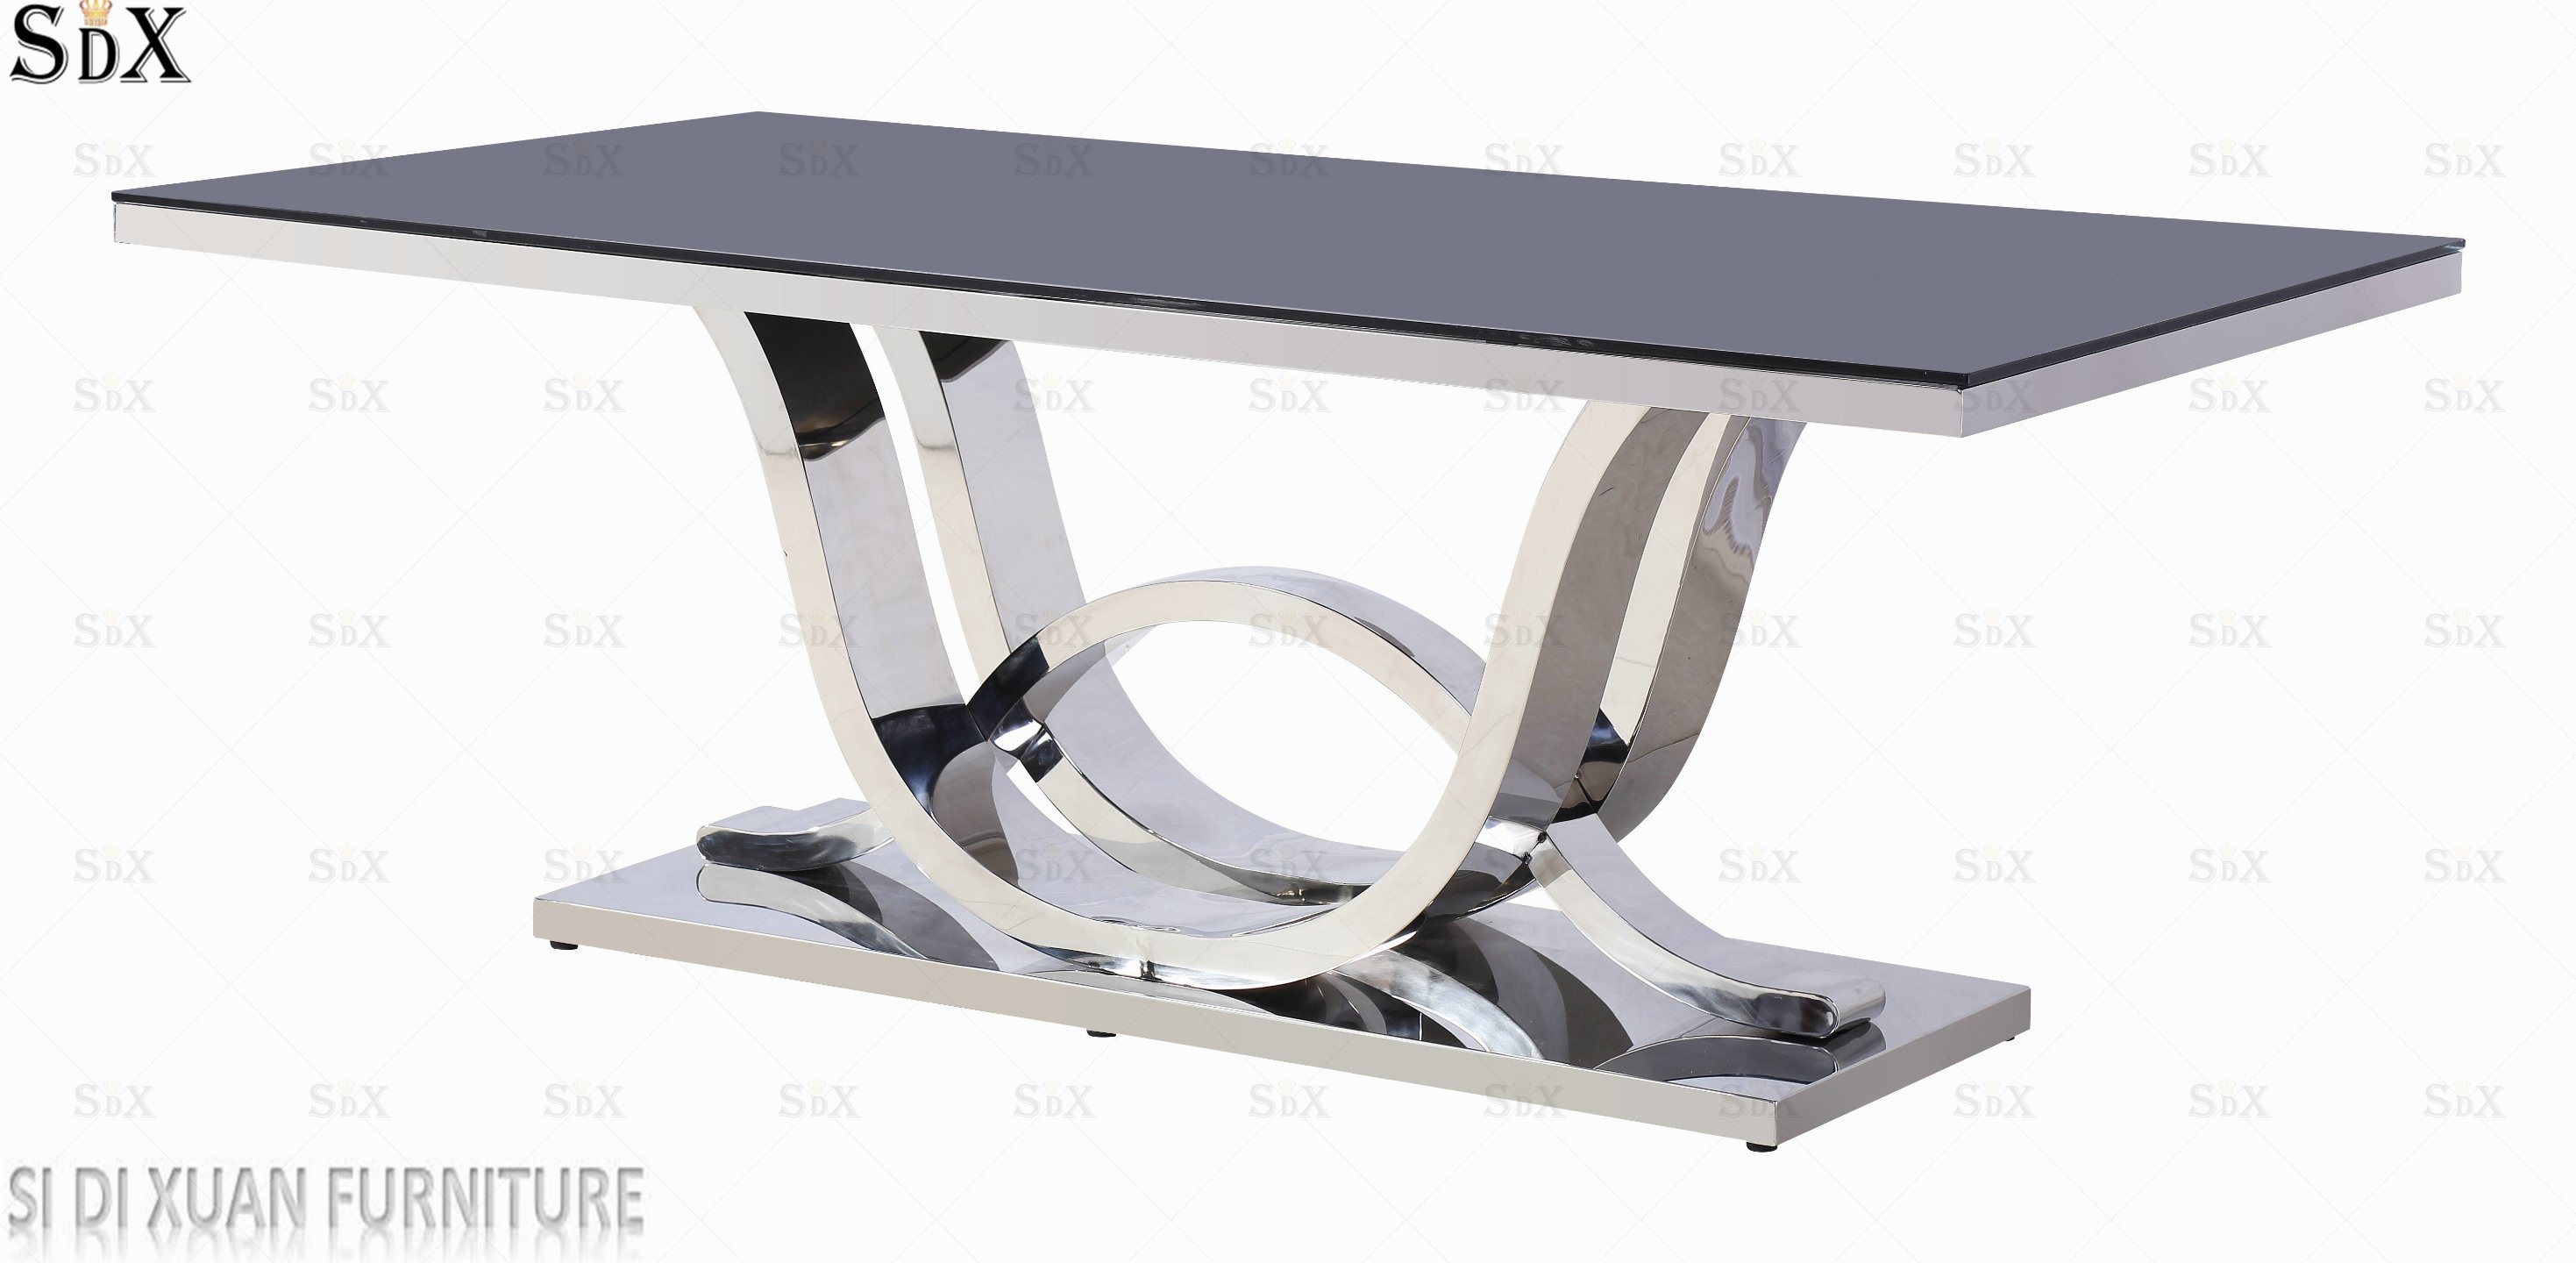 Hot Item Quality Products Stainless Steel Furniture Restaurant Tables Chairs Gl Dining Table